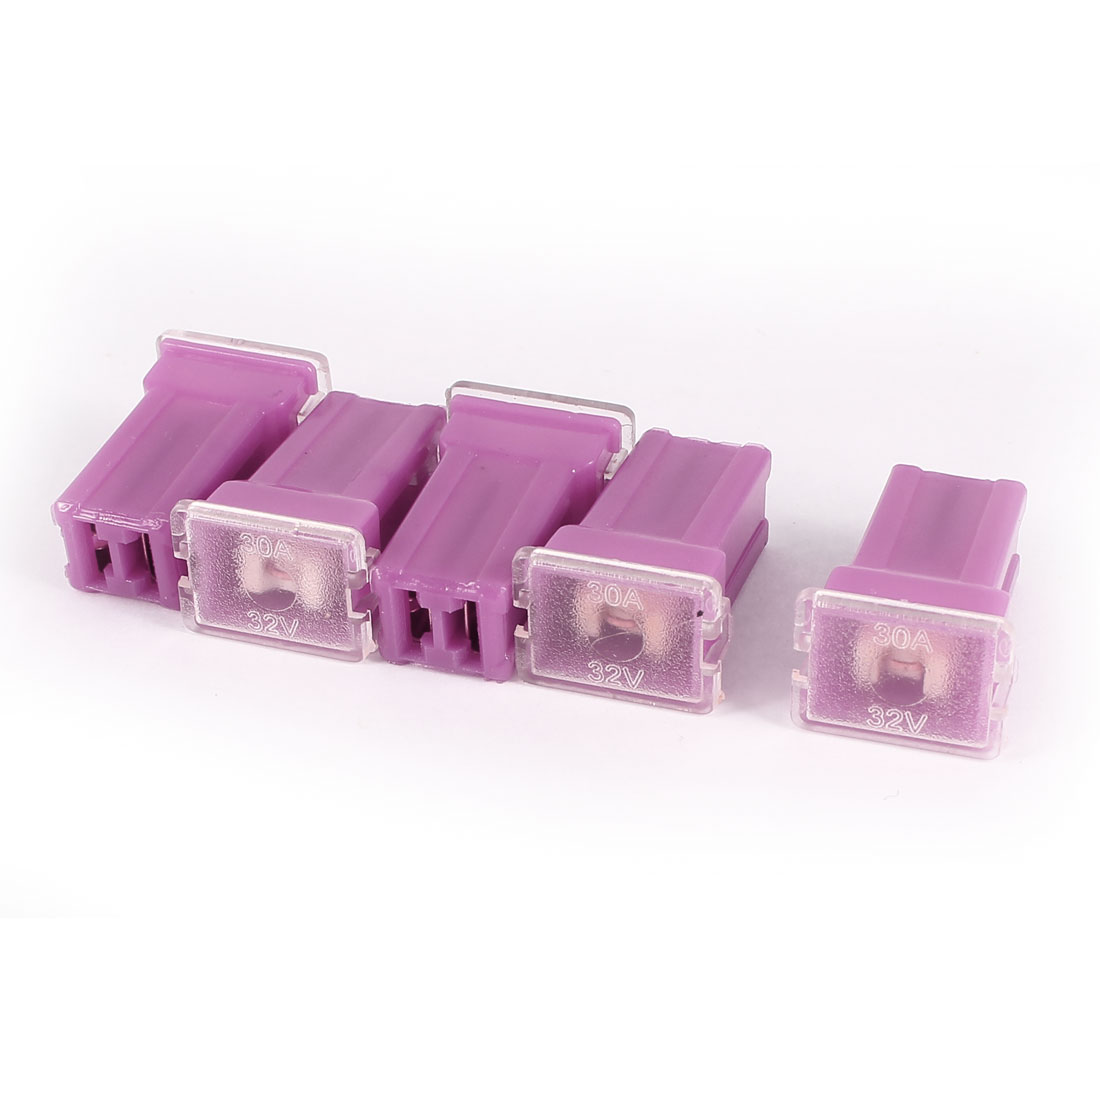 Fuchsia 30A 32V J Case Female Adapter in Blade Cartridge PAL Fuse 5 Pcs